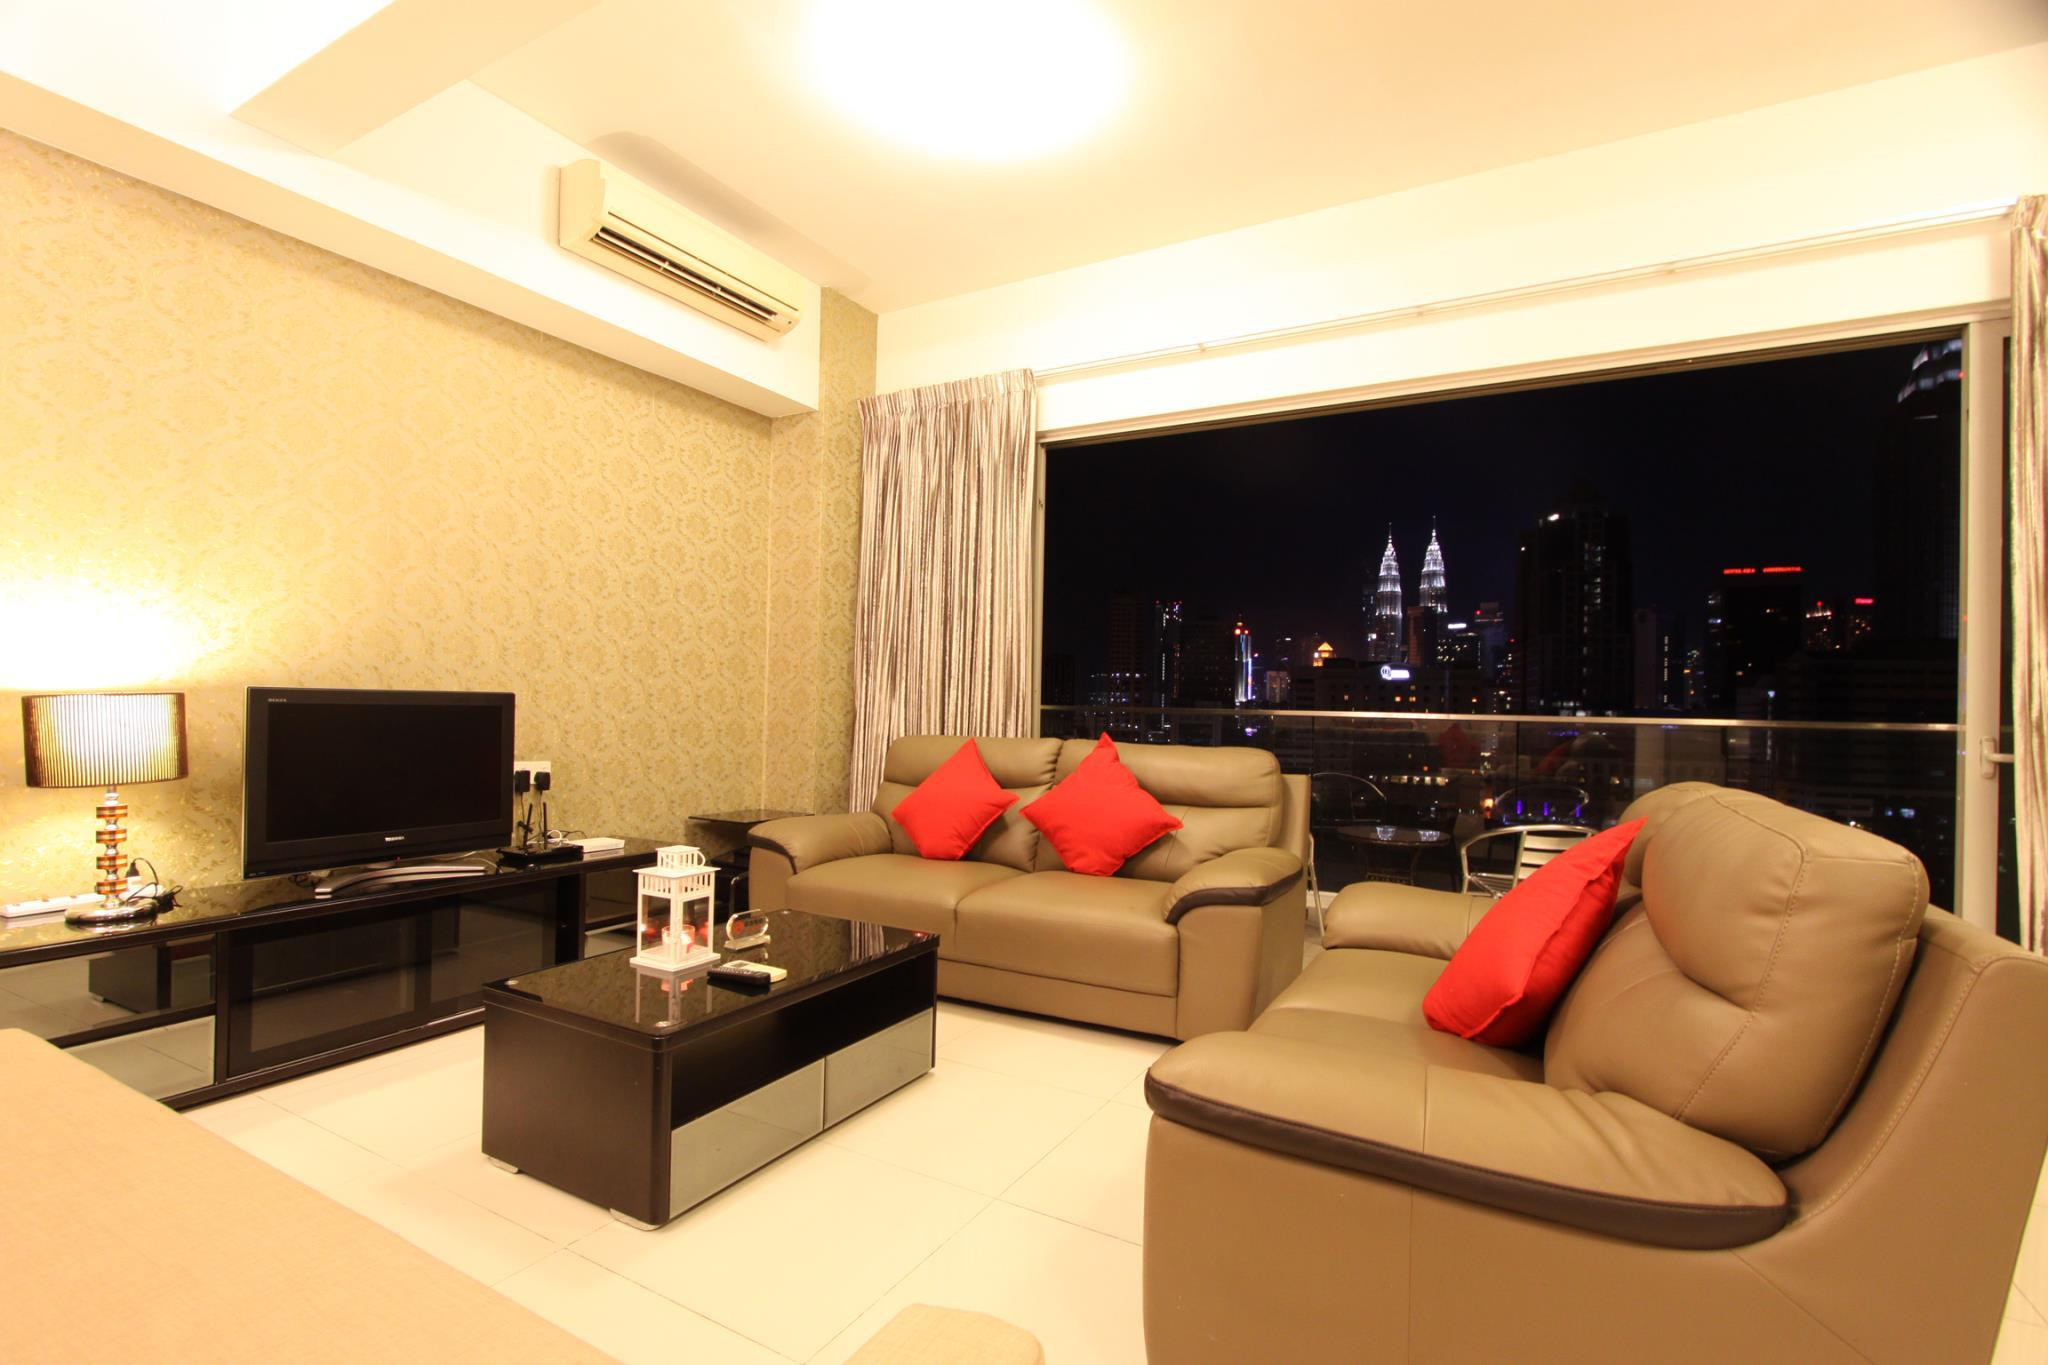 Astonishing KLCC View Directly From Living Room